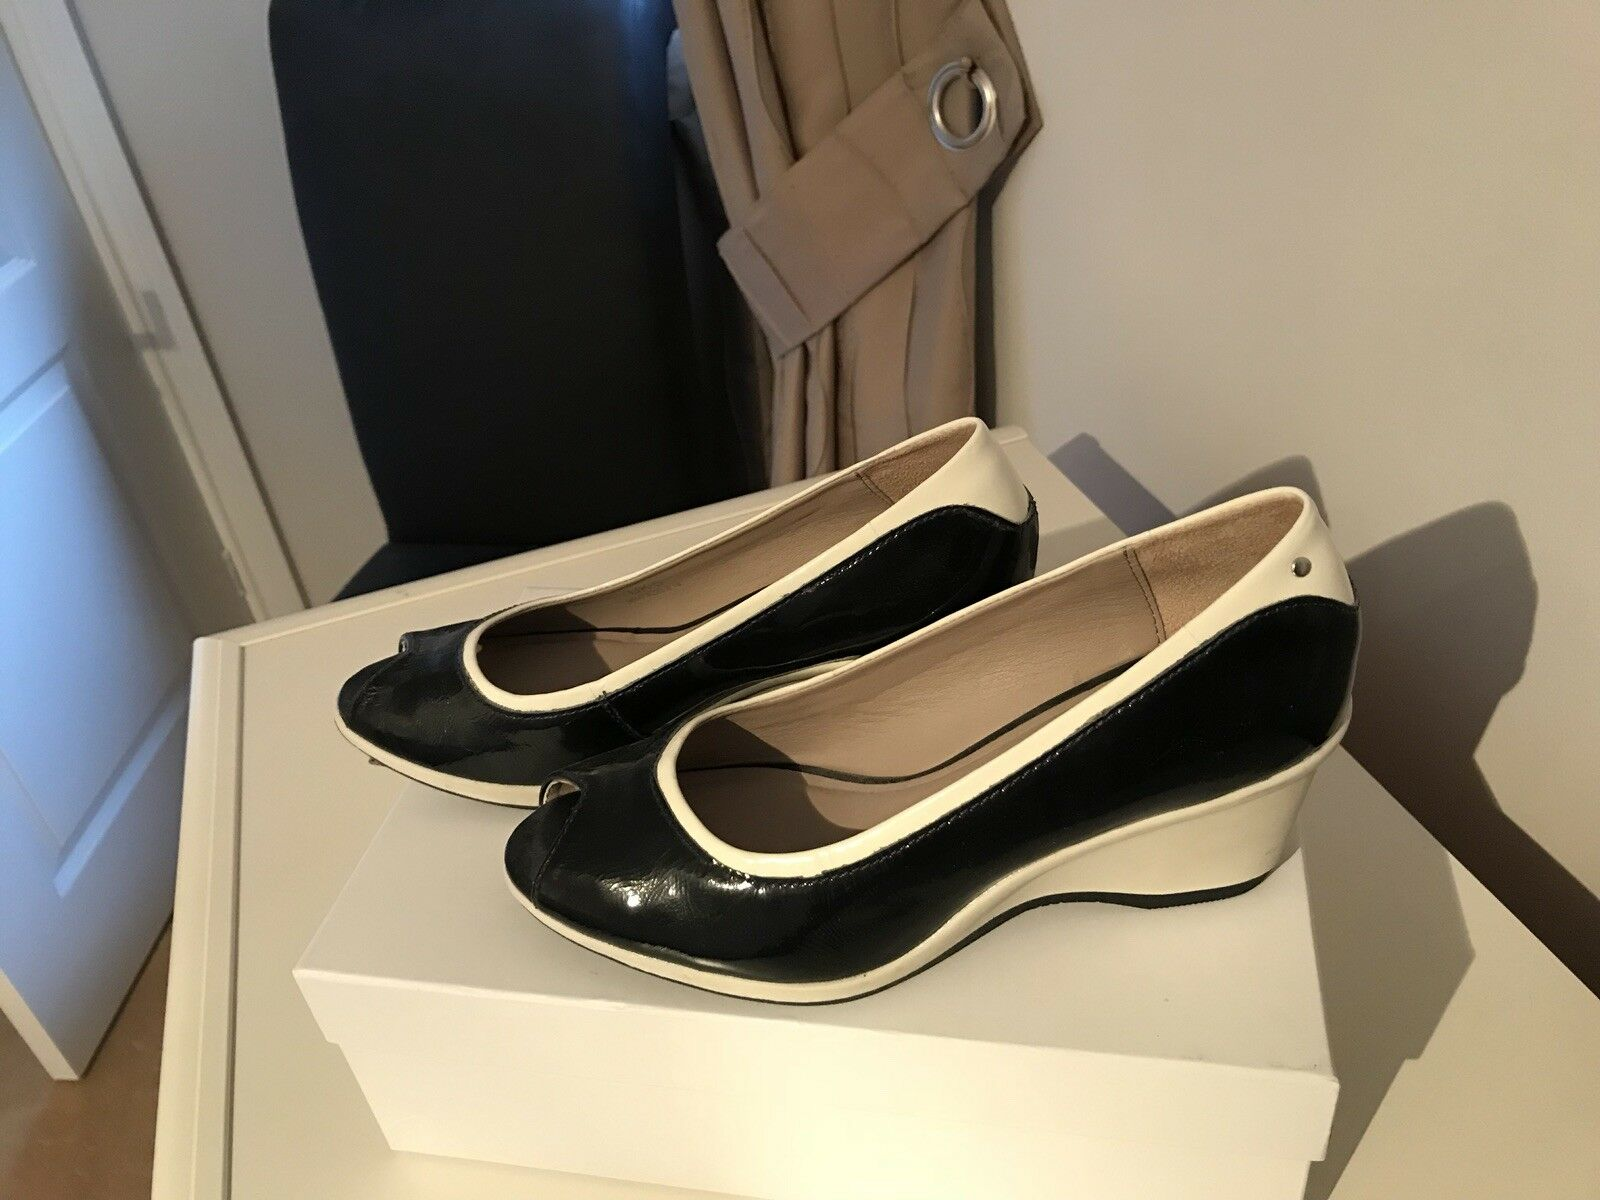 M& S  New Navy And White Summer open shoes Size UK 5 Europ 38